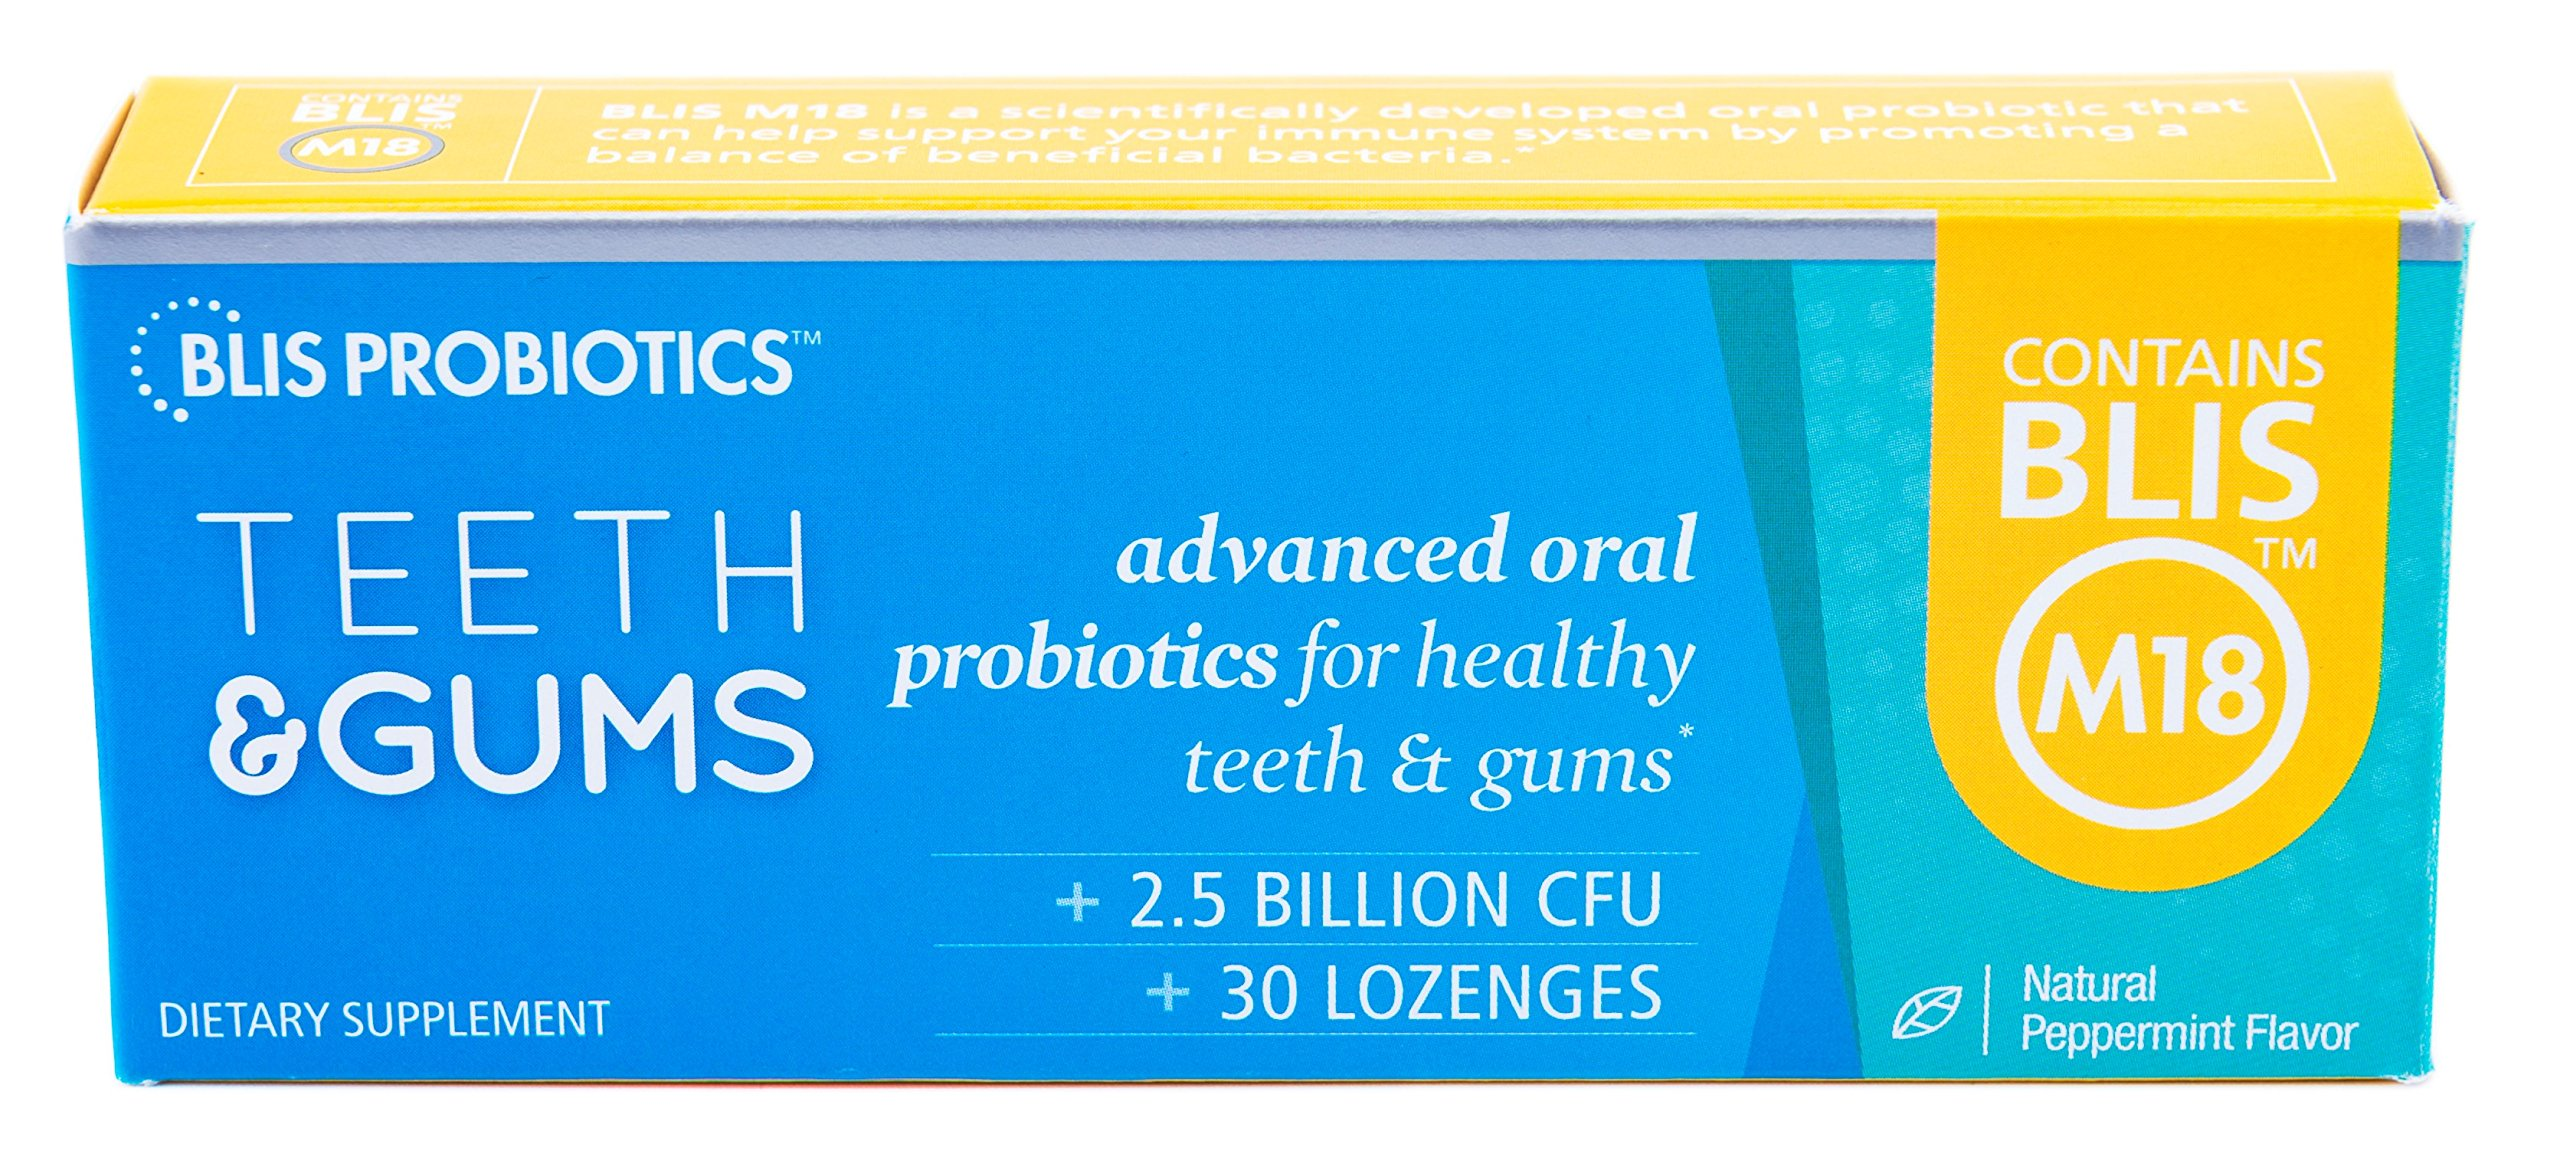 BLIS Teeth&Gums Oral Probiotic, Most Potent BLIS M18 Formula Available, 2.5 Billion CFU, Healthy Mouth, Teeth and Gums, Support for Adults and Kids, Sugar-Free Lozenges, 30 Day Supply